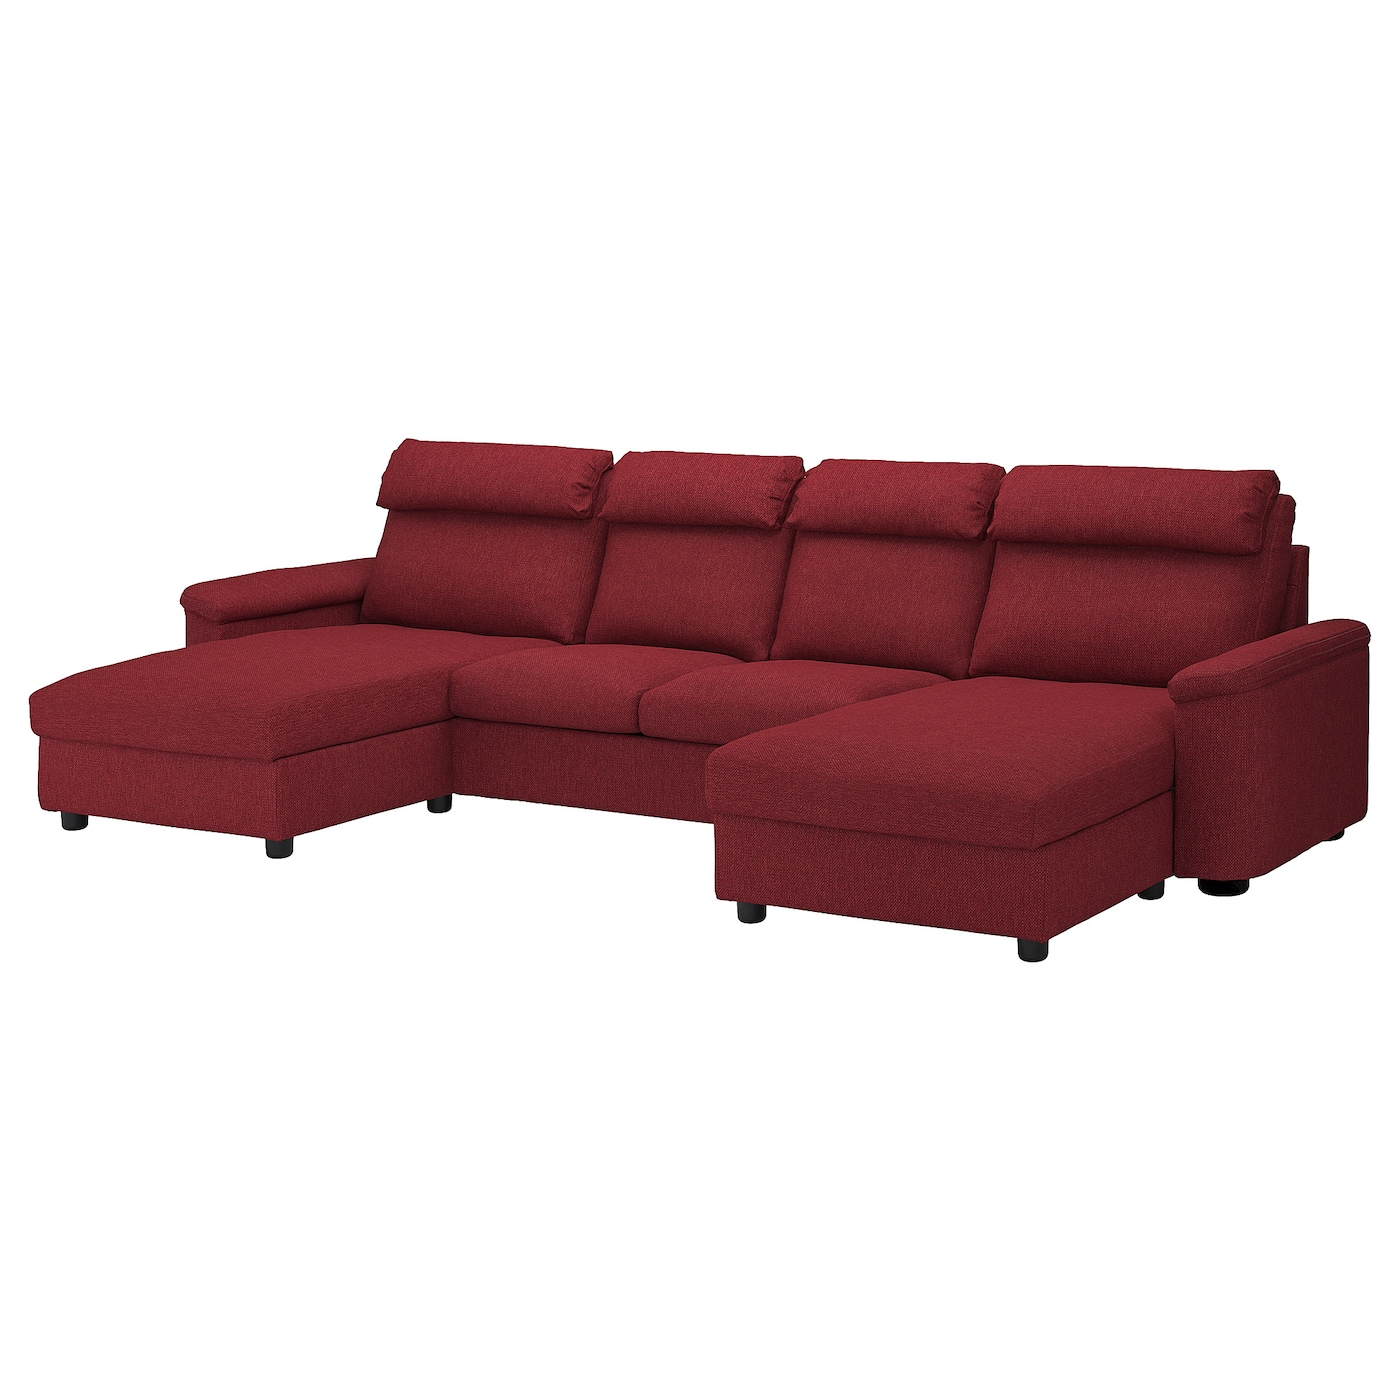 IKEA LIDHULT 4-seat sofa The cover is easy to keep clean since it is removable and machine washable.